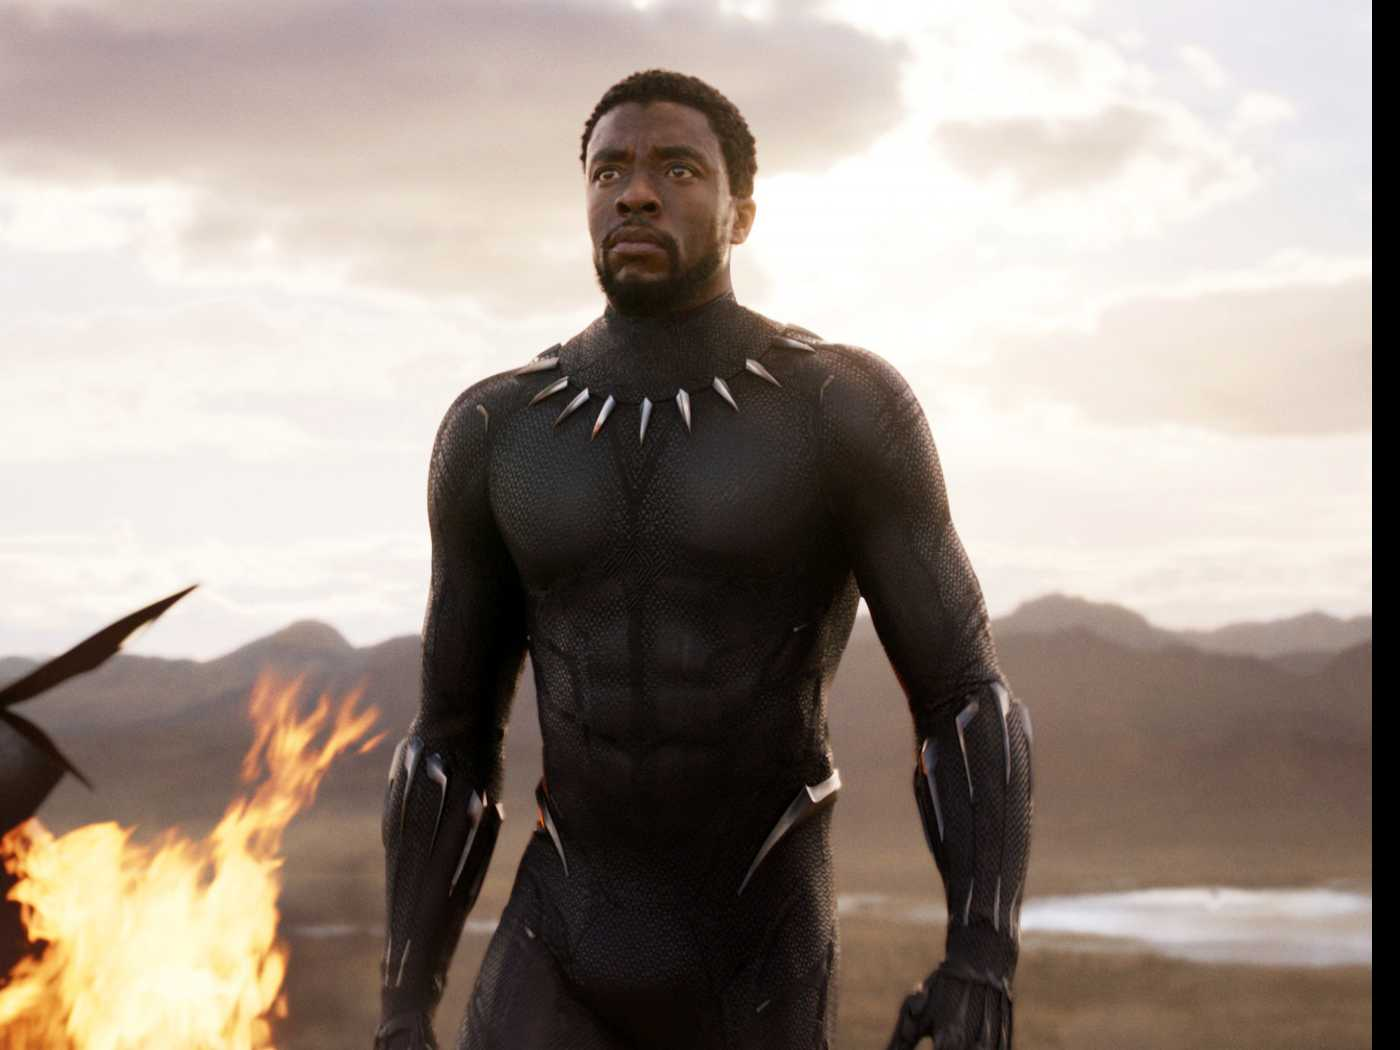 'Black Panther,' 4 Weeks in, Tops 'A Wrinkle in Time'